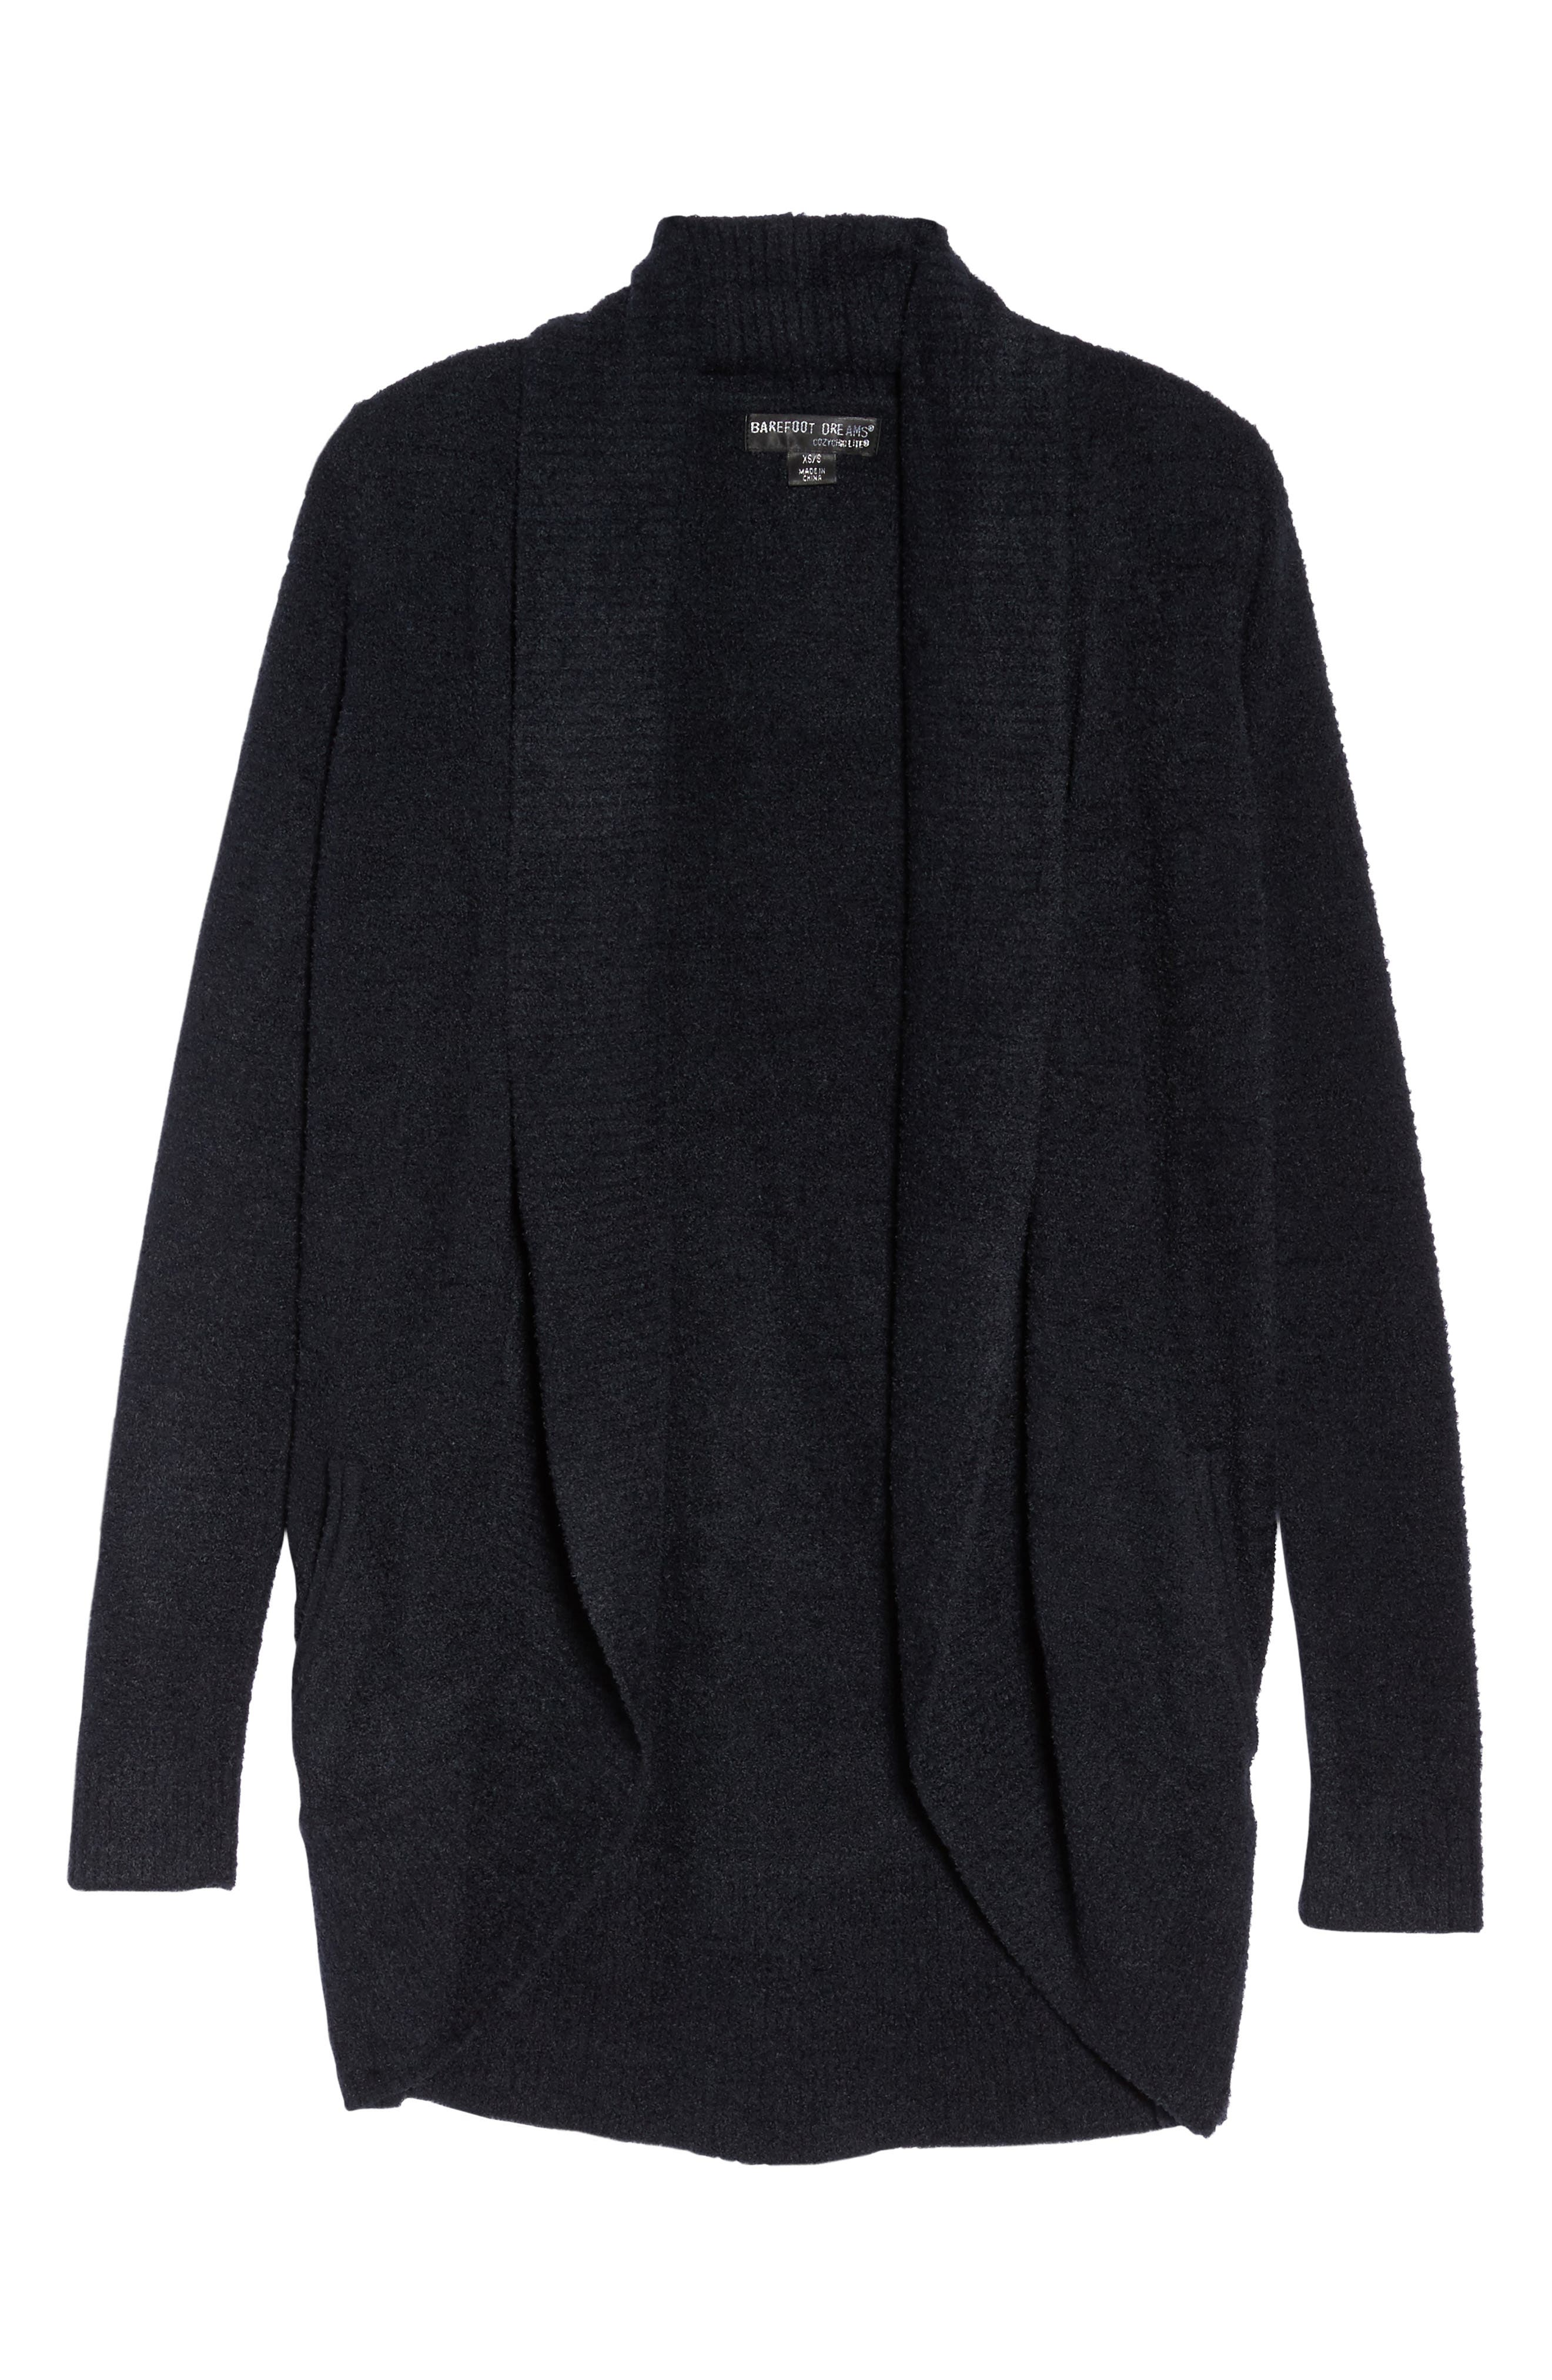 BAREFOOT DREAMS<SUP>®</SUP>, CozyChic Lite<sup>®</sup> Circle Cardigan, Alternate thumbnail 6, color, BLACK